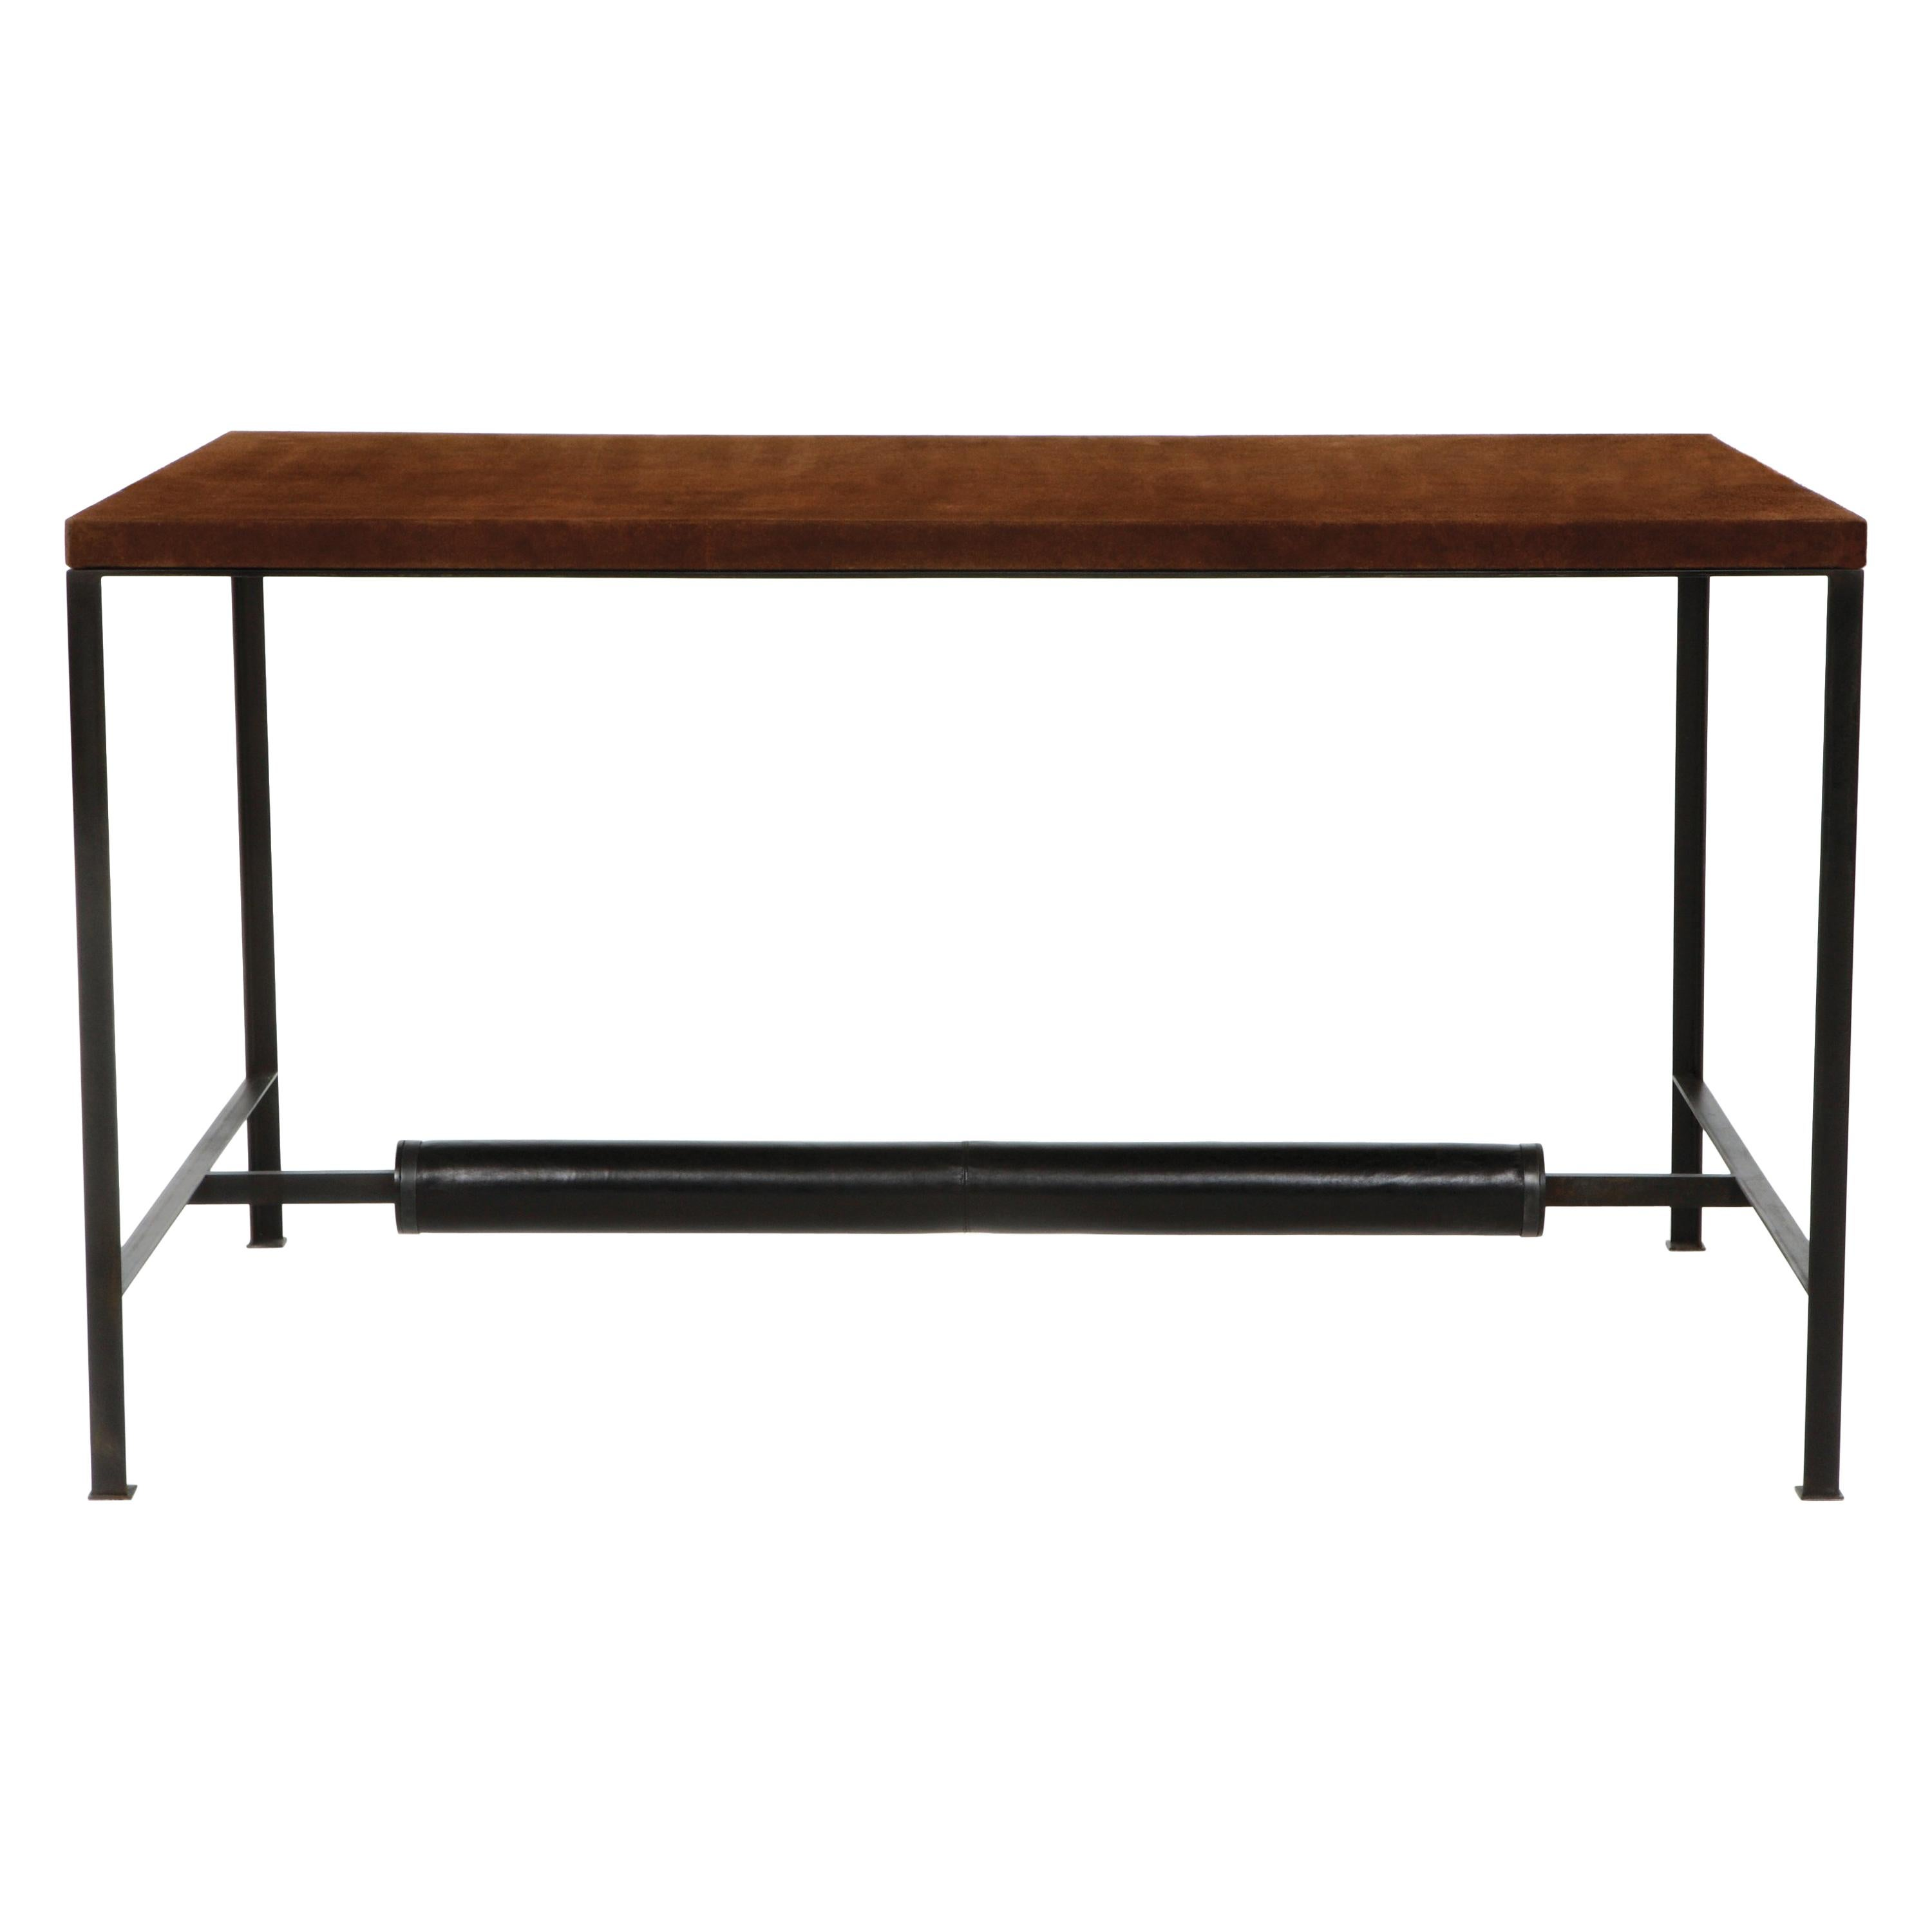 90° Leather & Metal Writing Desk, Vica designed by Annabelle Selldorf